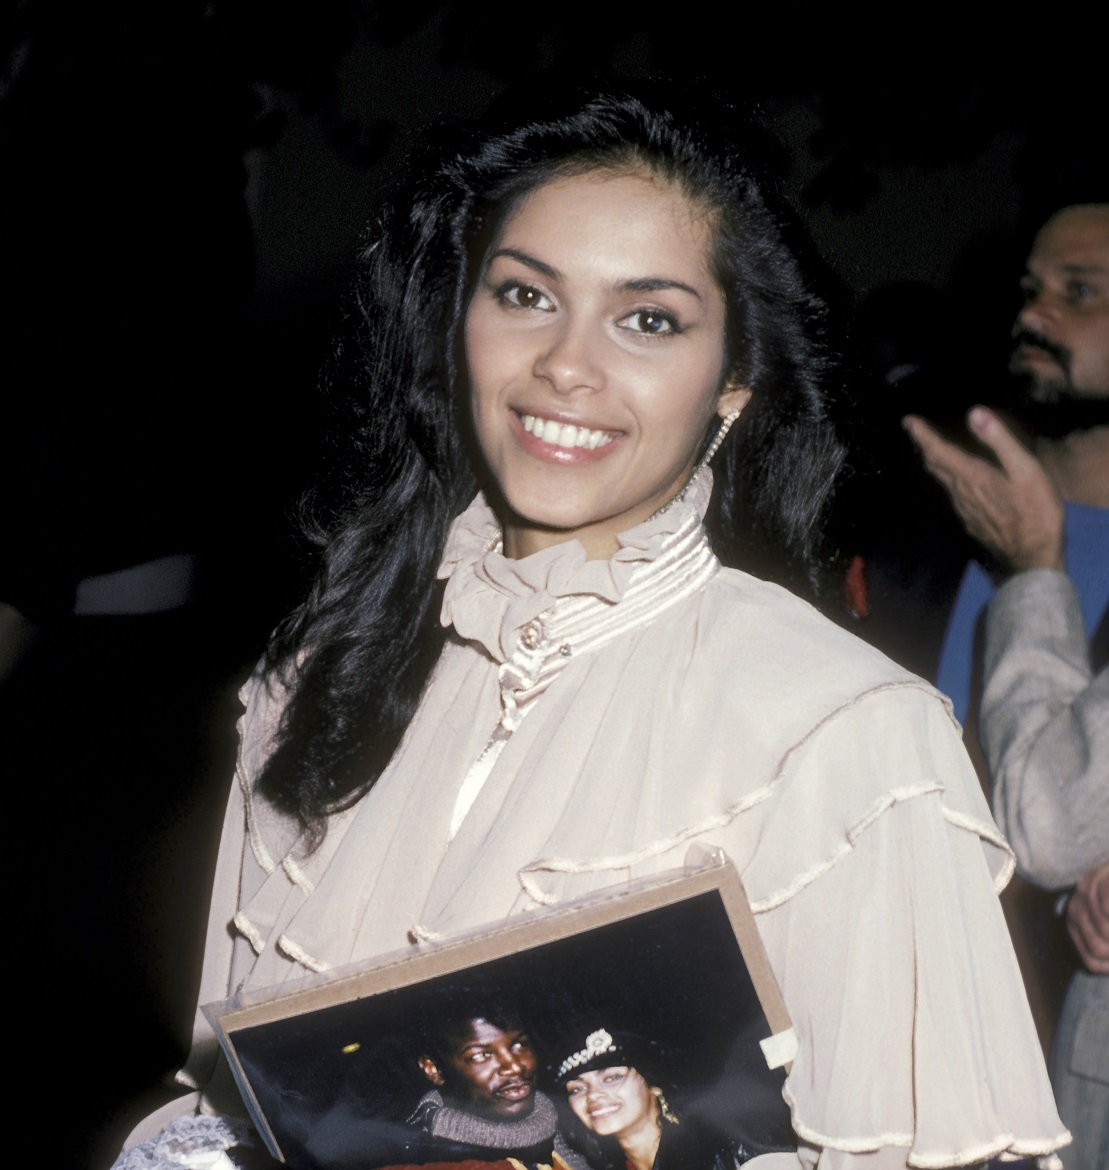 The Lair of the Silver Fox.: Denise Matthews, a/k/a Vanity ... Vanity Singer Today